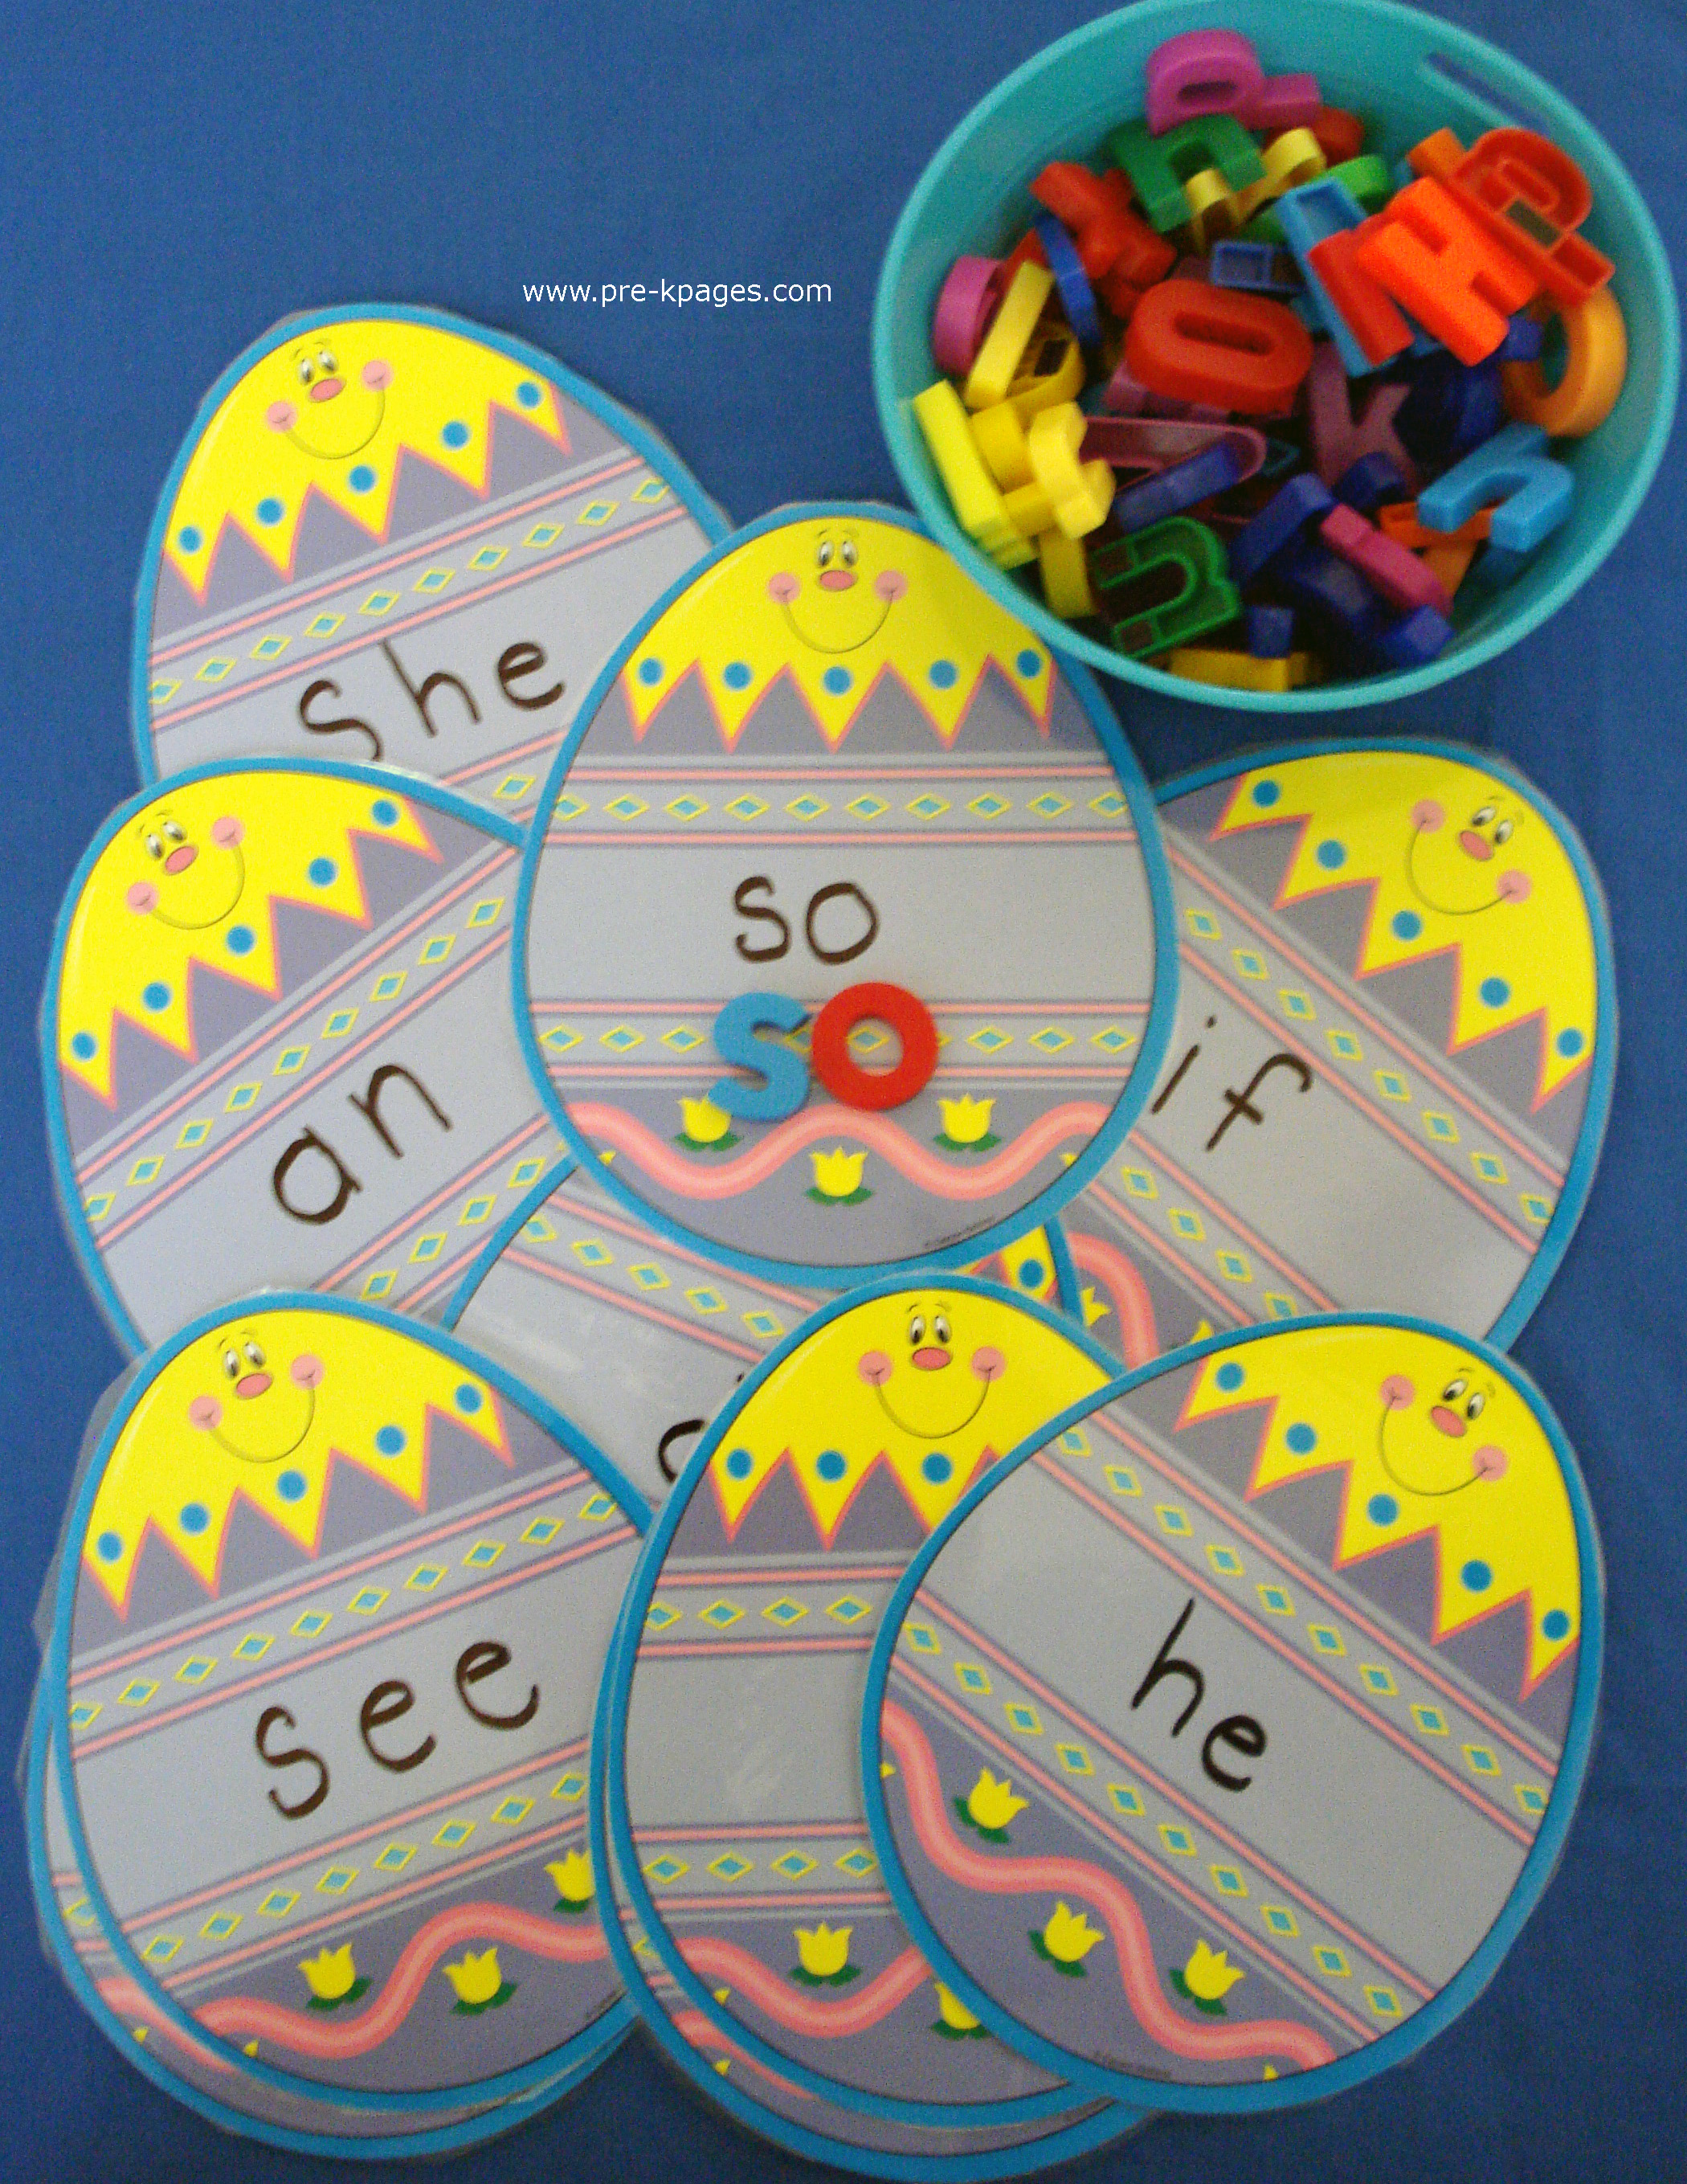 egg sight words